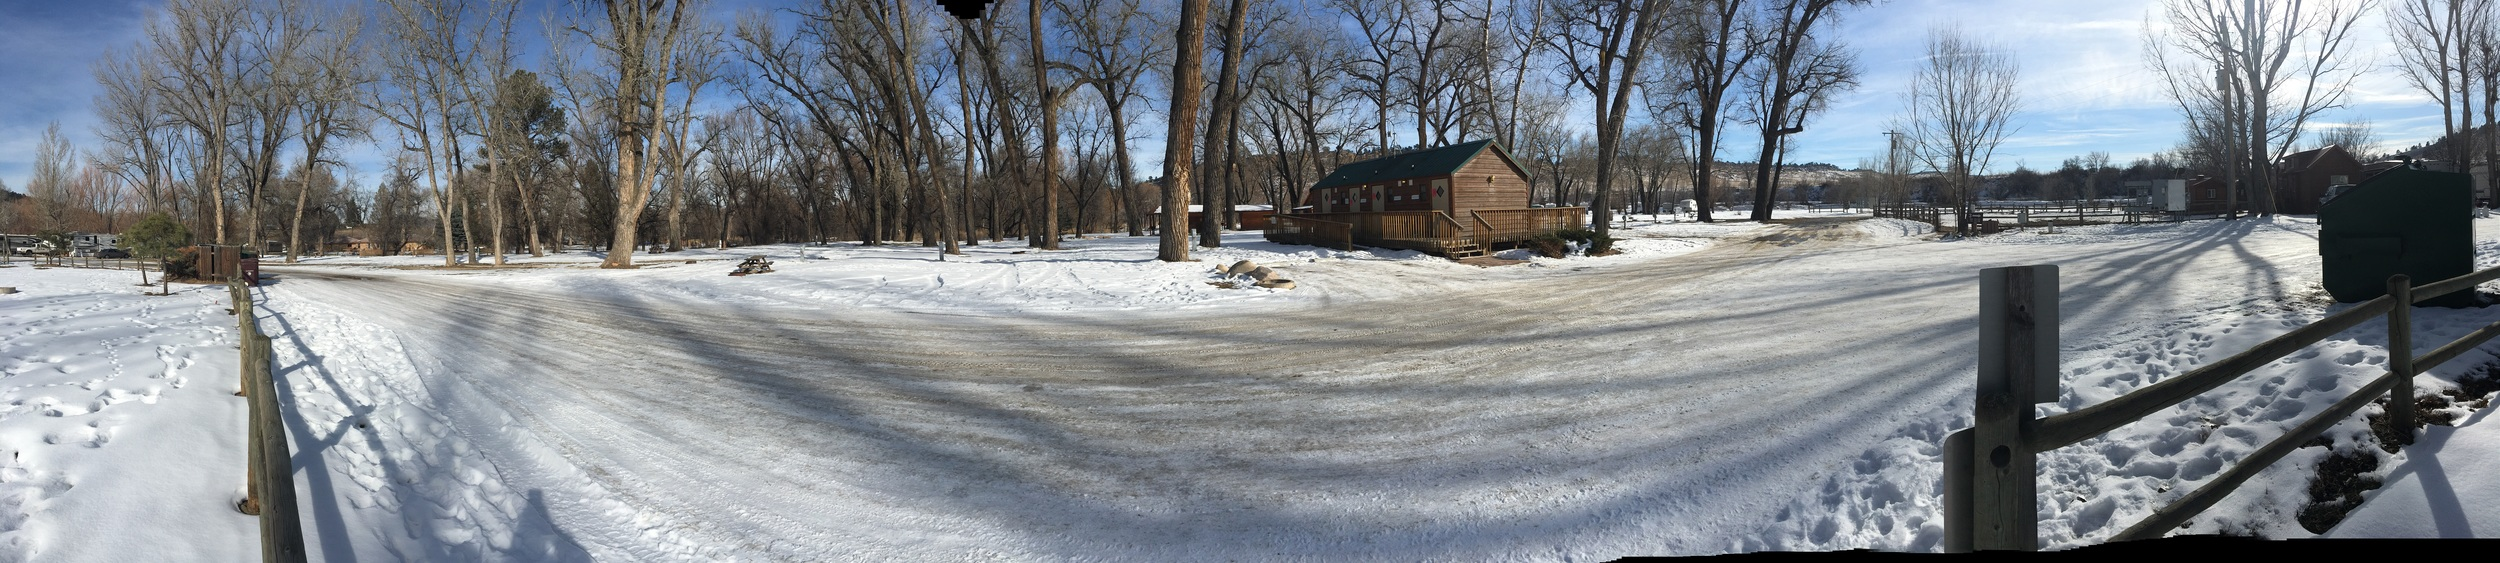 Here's a panorama of the partial hookup area as seen from the big central park. That's the bath/laundry house in the foreground, and the spaces I'm thinking of are behind and slightly left of it.